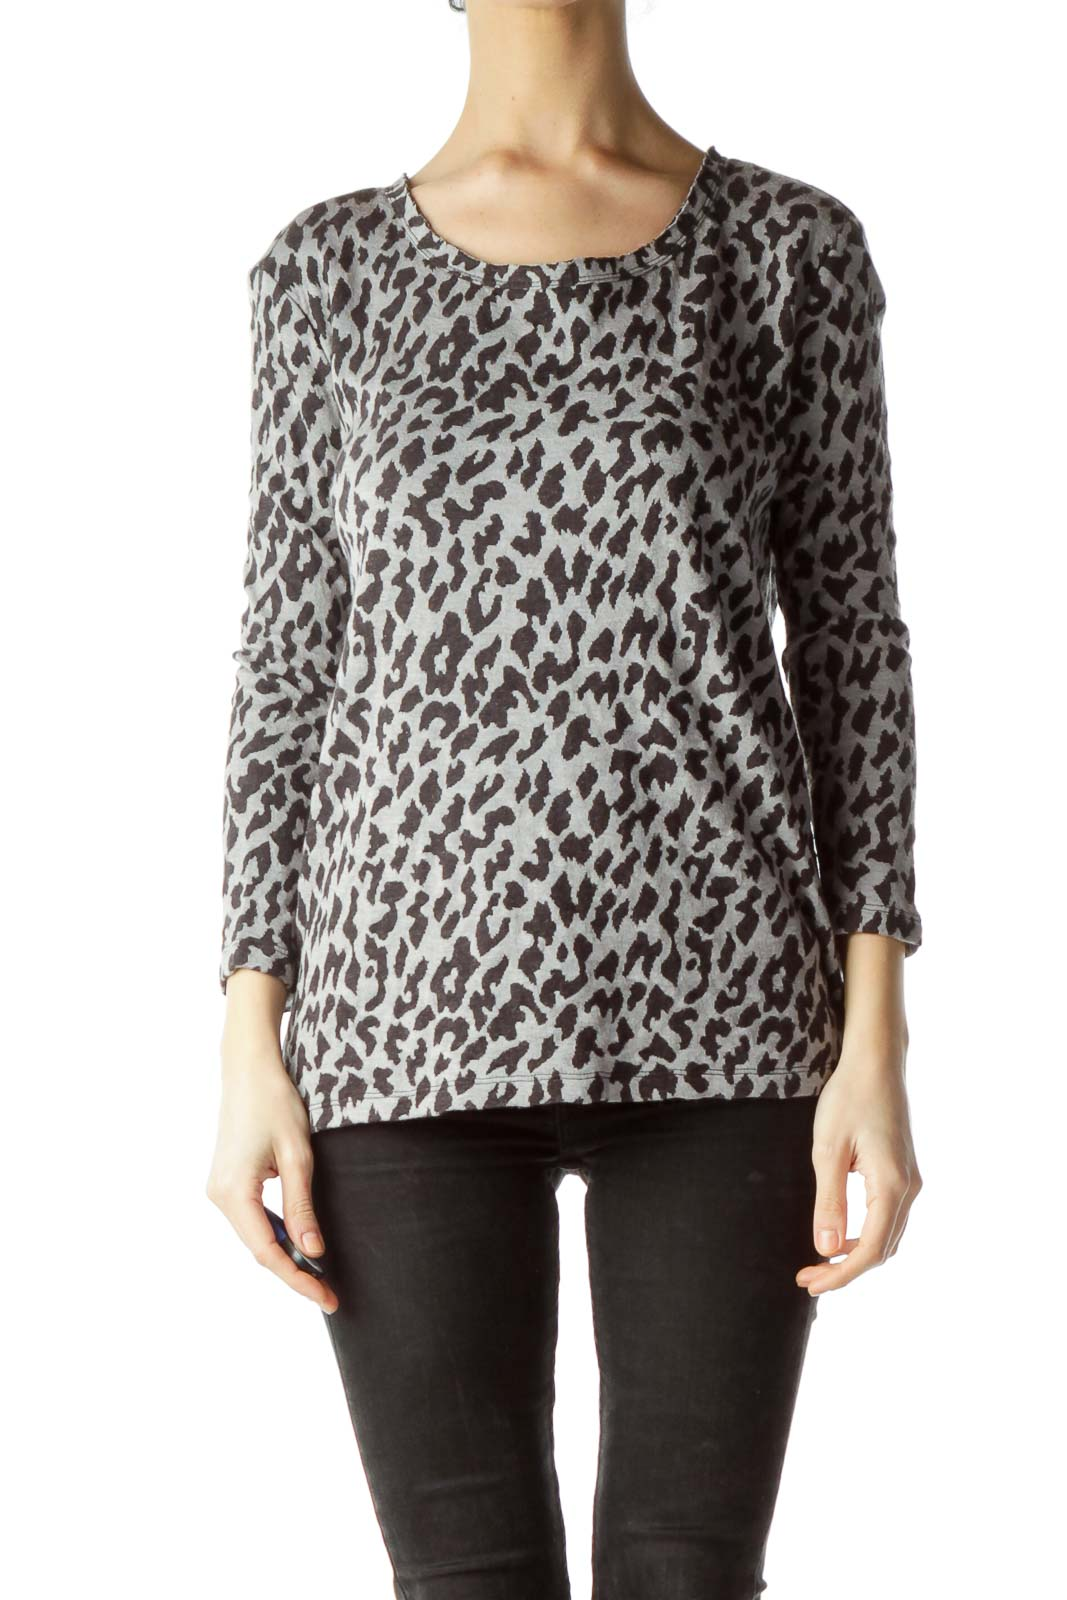 Gray Animal Print Knit Top Front